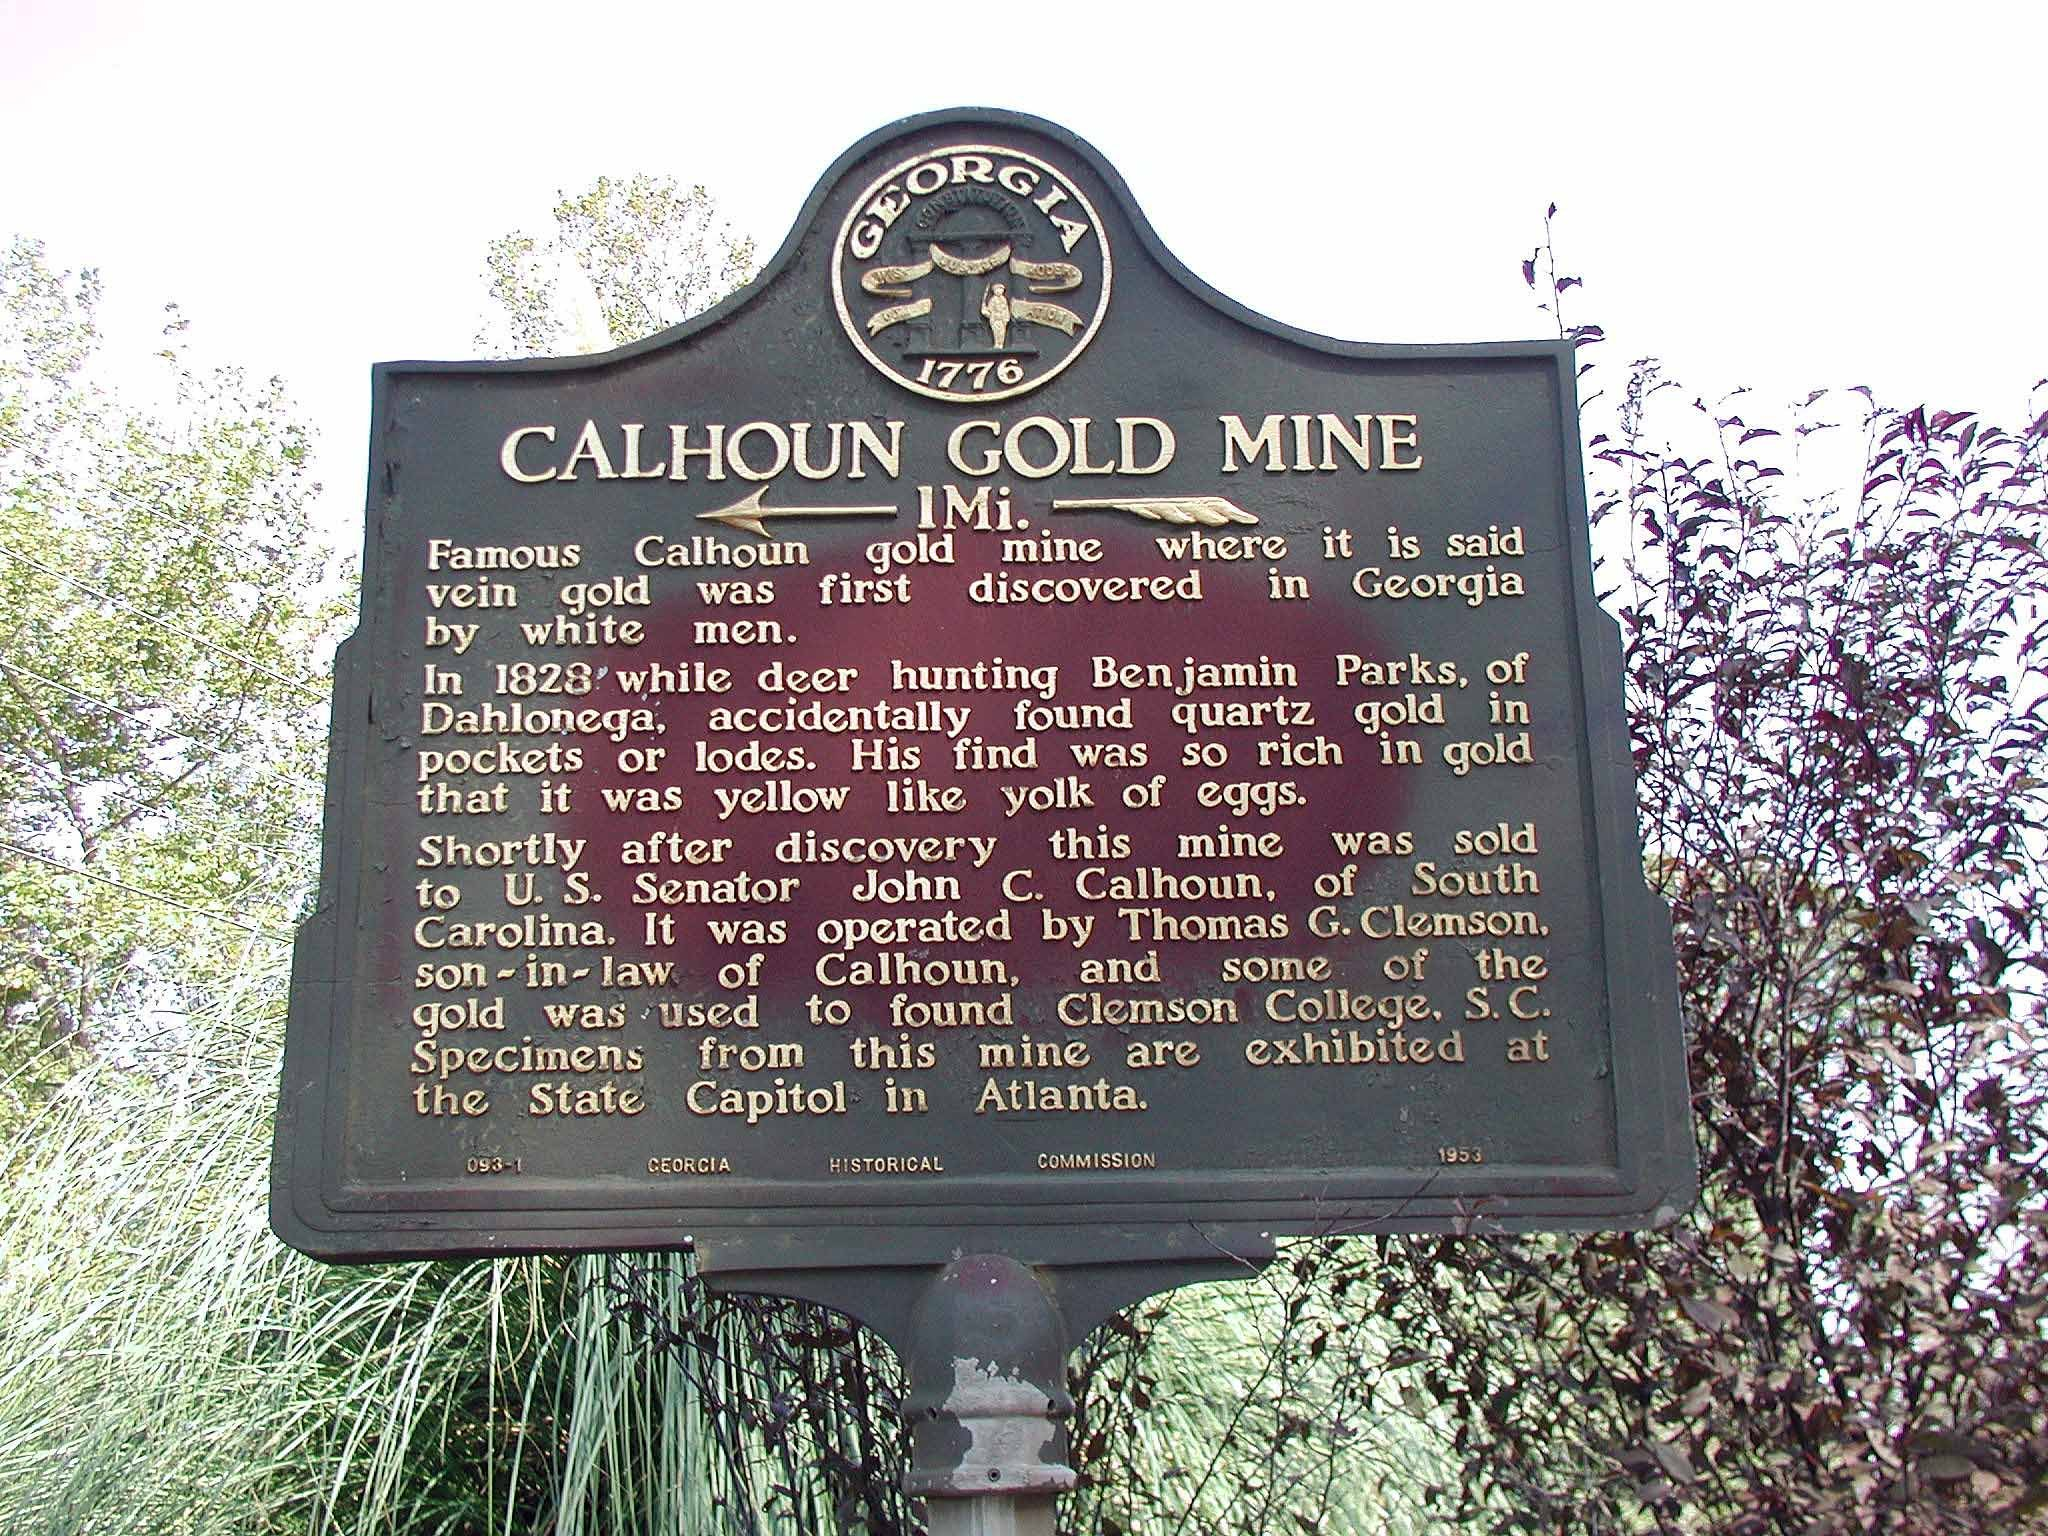 The historical marker for the Calhoun Gold Mine is located a mile from the former mine at the intersection of Calhoun Mine Road and the highway.